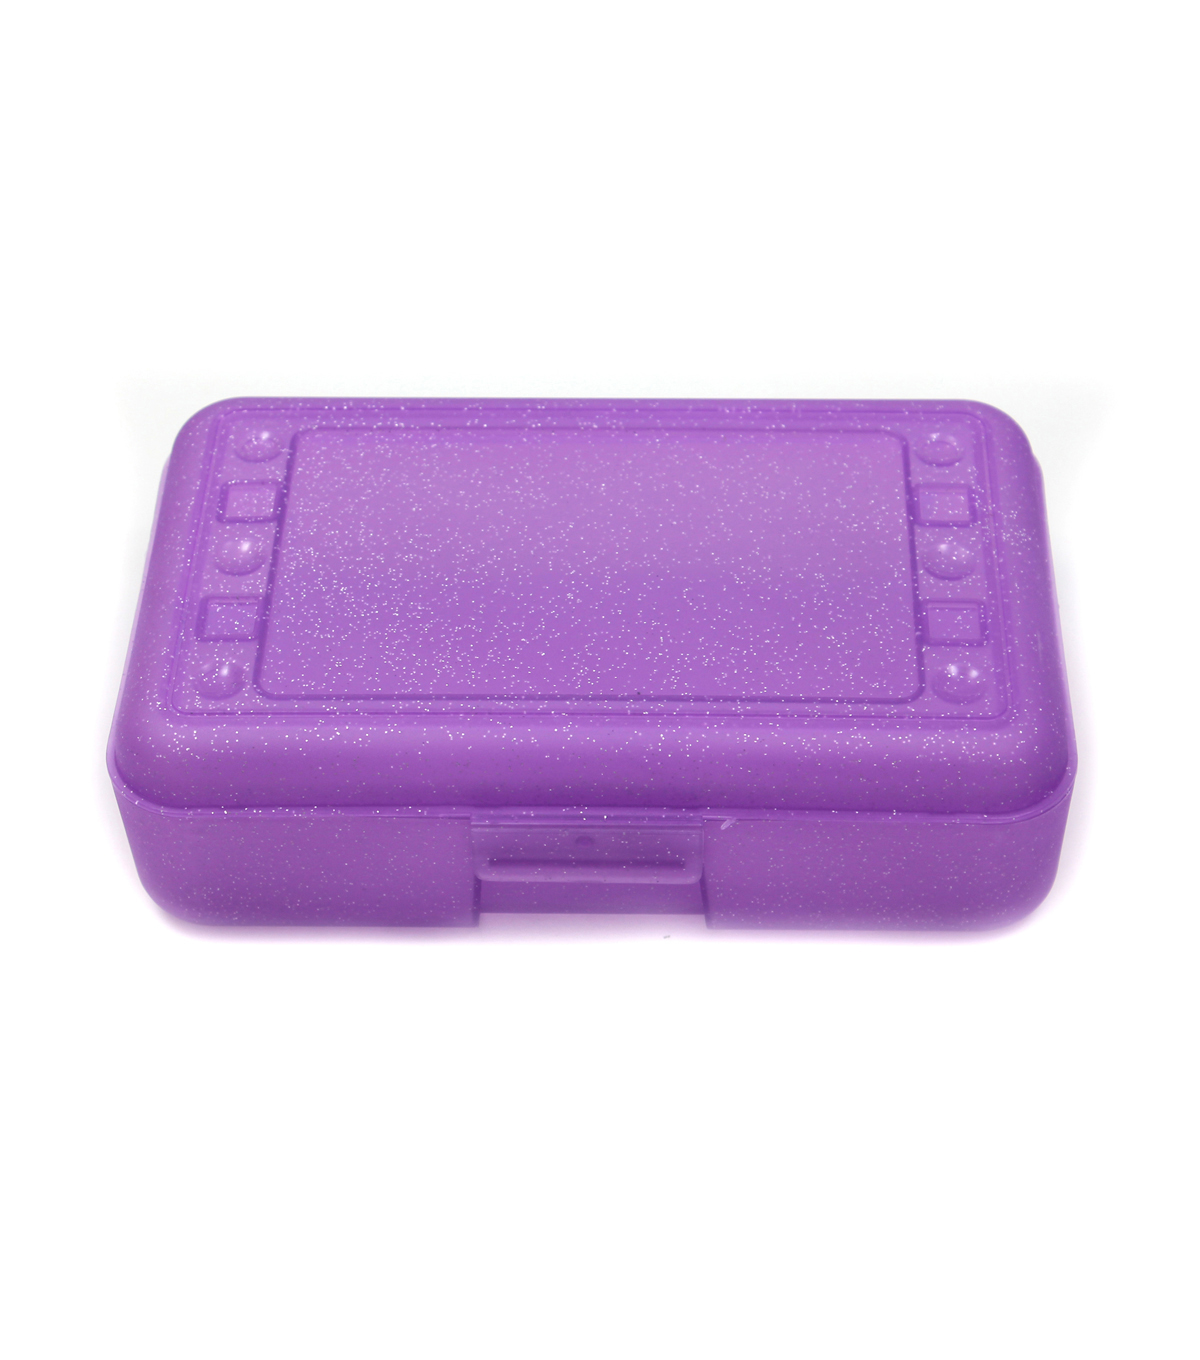 Romanoff Products Pencil Box, Pack of 12, Purple Sparkle